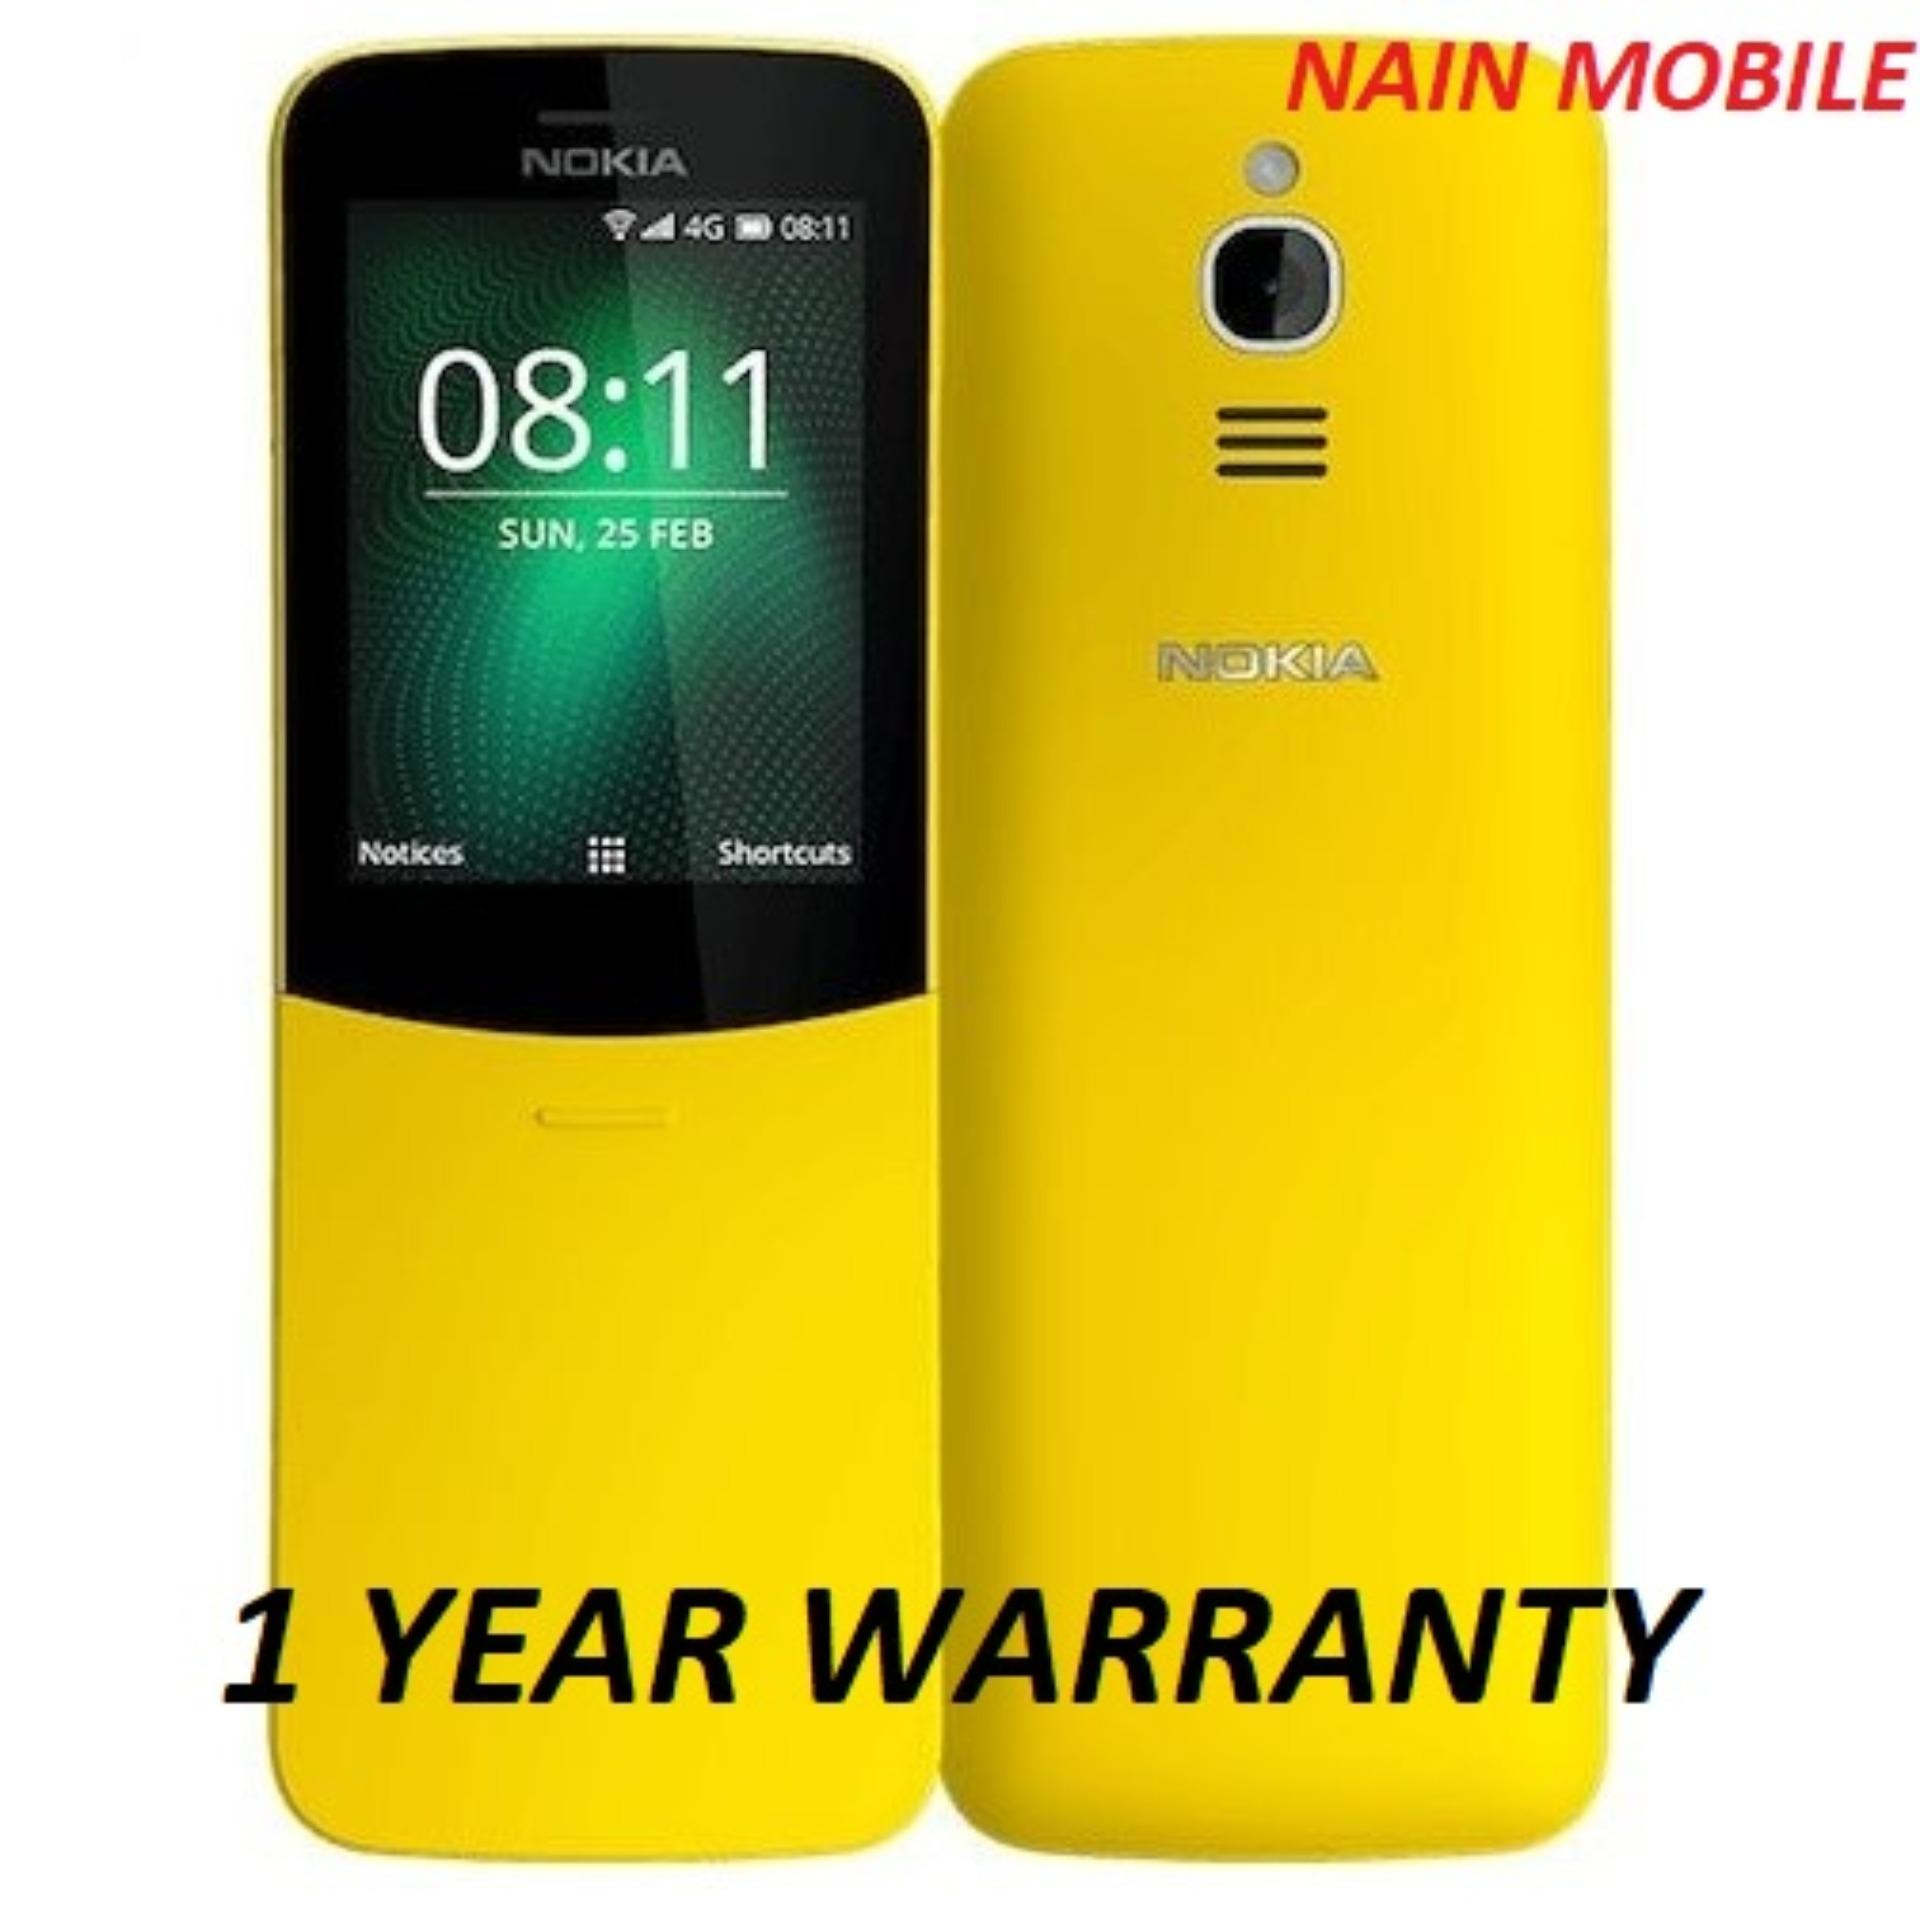 Latest Nokia Mobiles Products Enjoy Huge Discounts Lazada Sg Xl Yellow 8110 4g